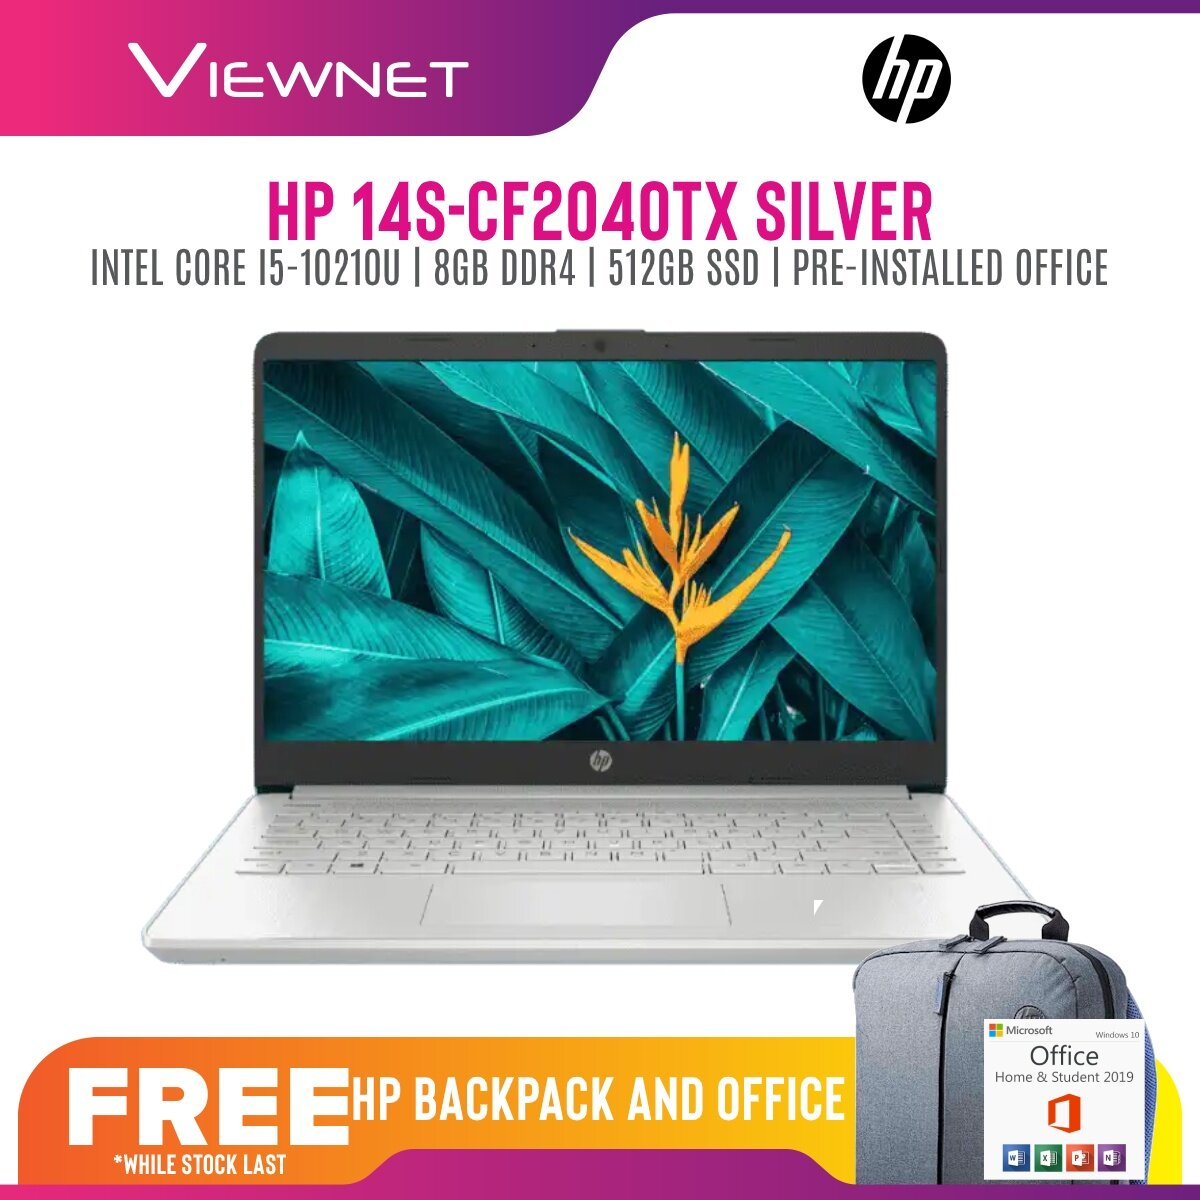 HP 14S-CF2040TX  INTEL CORE I5-10210U 8GB DDR4 512GB SSD AMD 530 2GB 14'' FHD OFFICE H&S BUILD IN (2Q9Y0PA) 2 Years Warranty Onsite